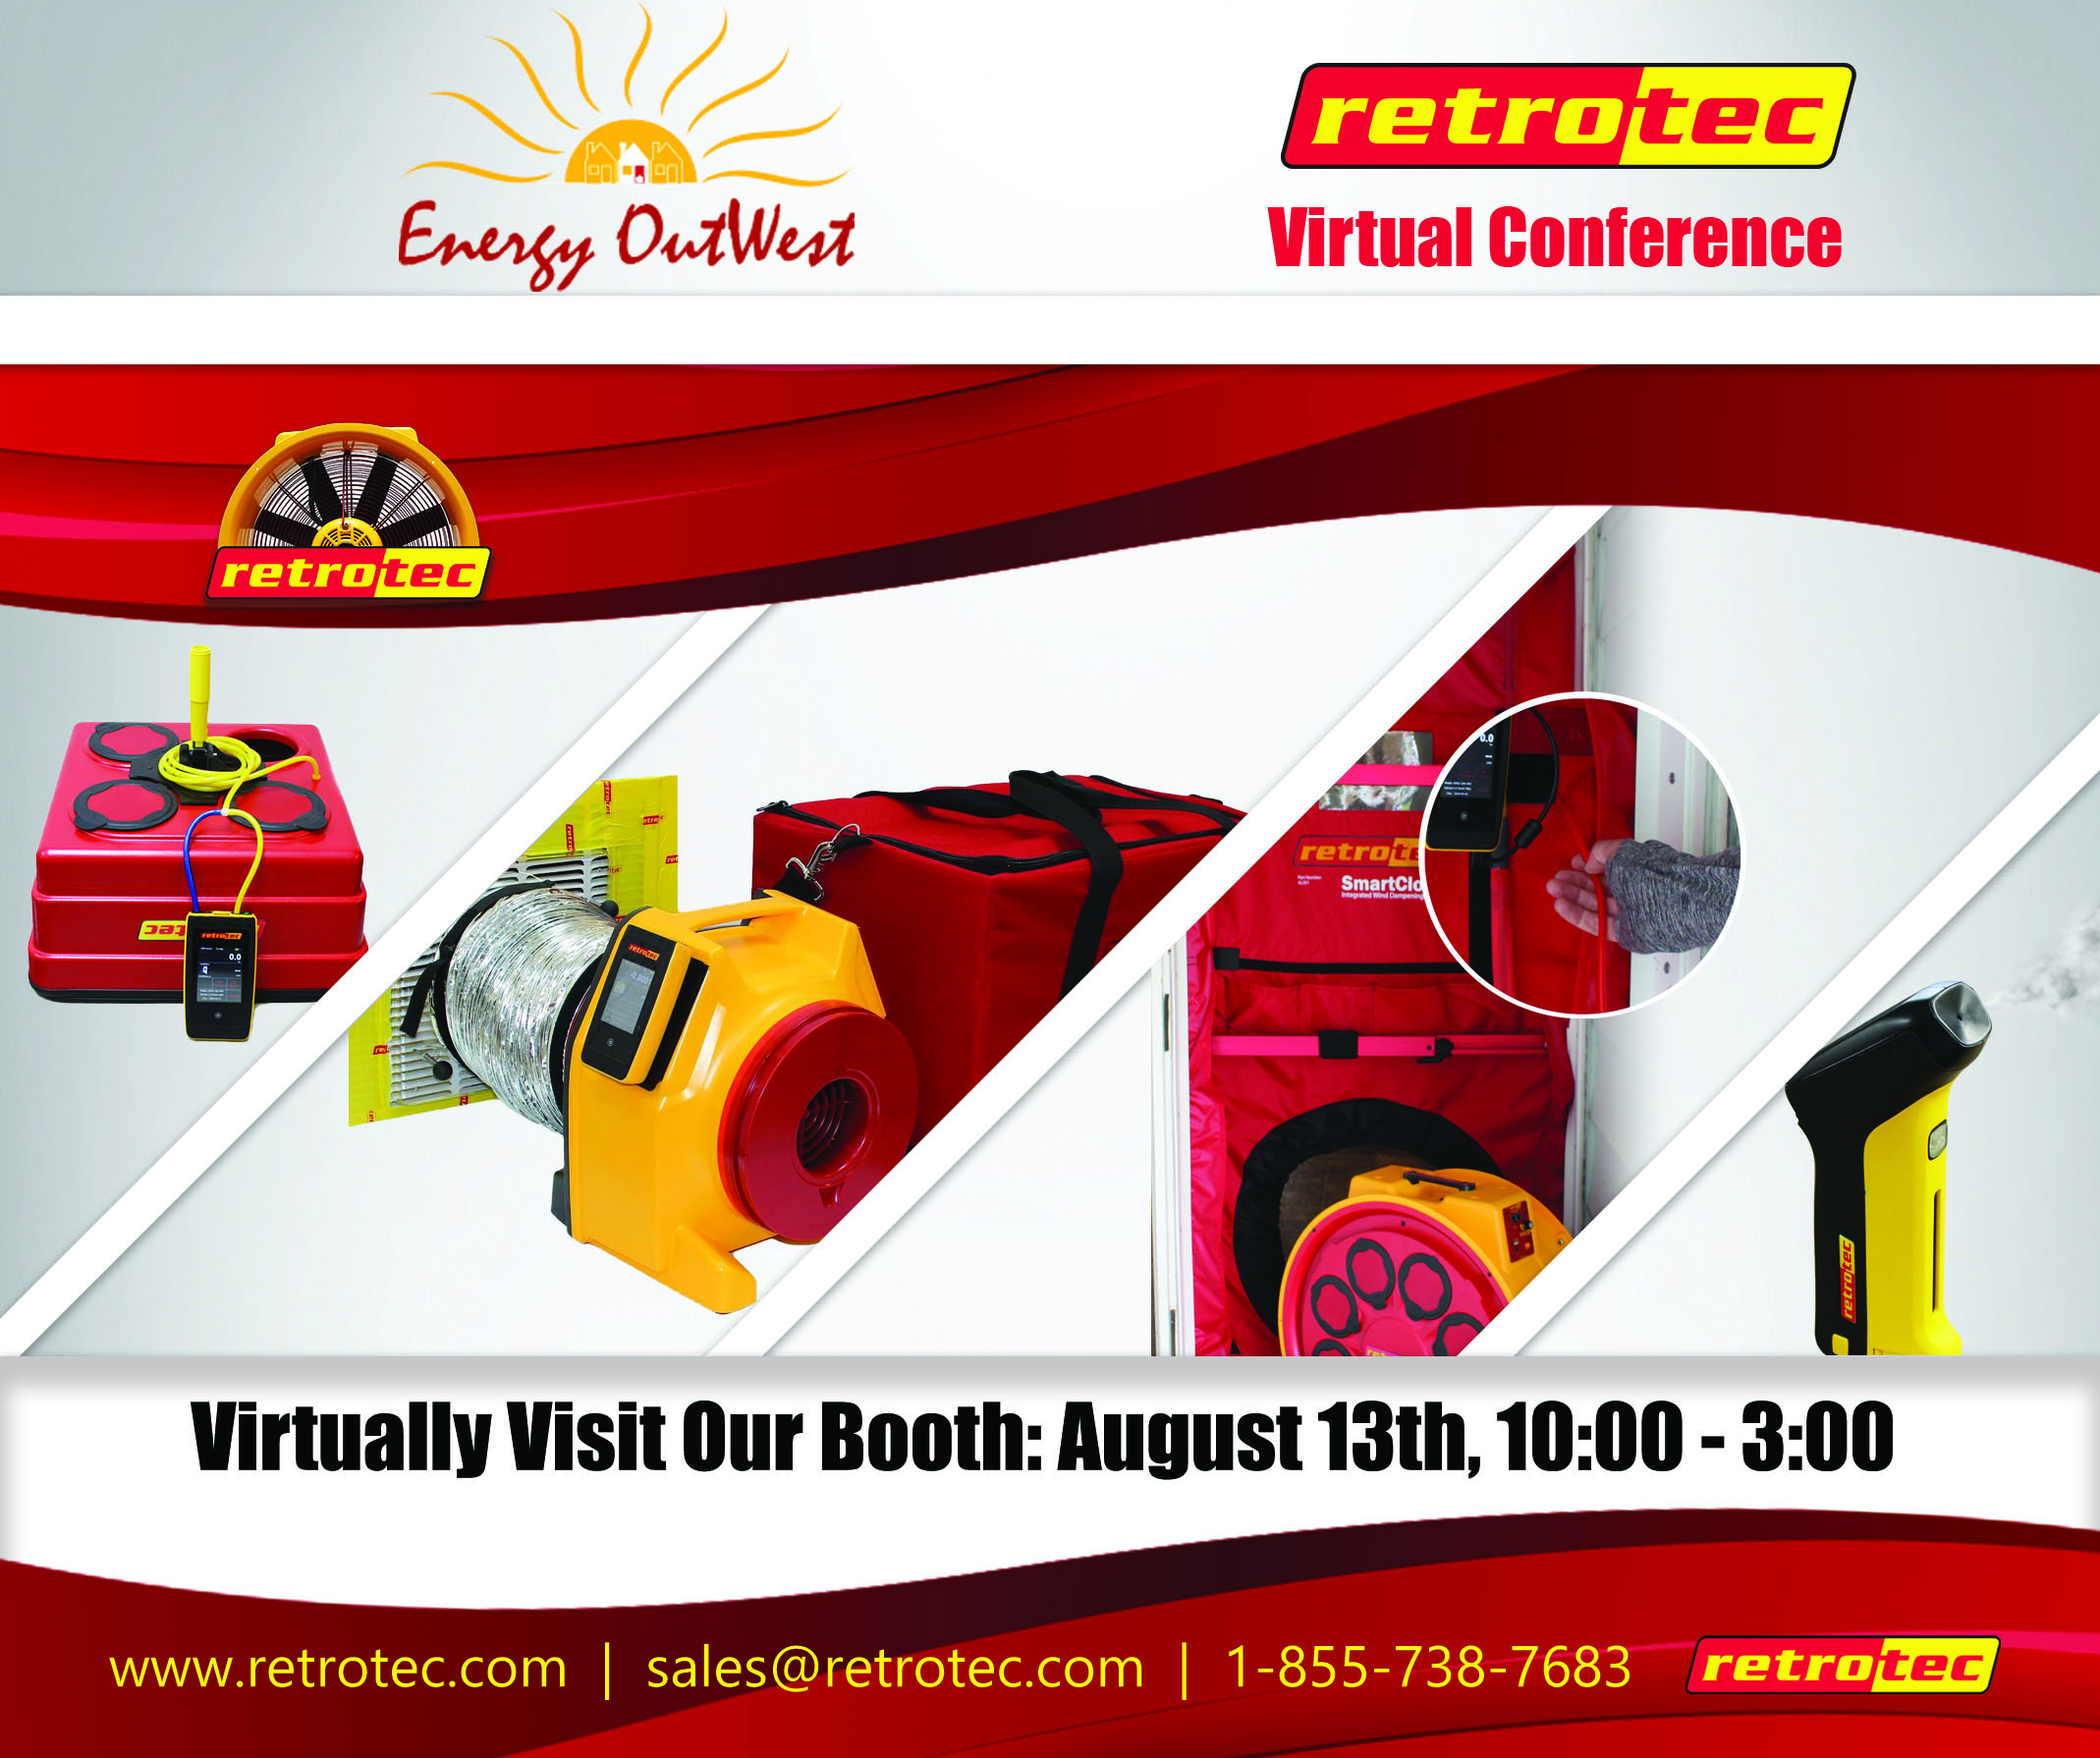 Retrotec Our Virtual Booth for Energy OutWest